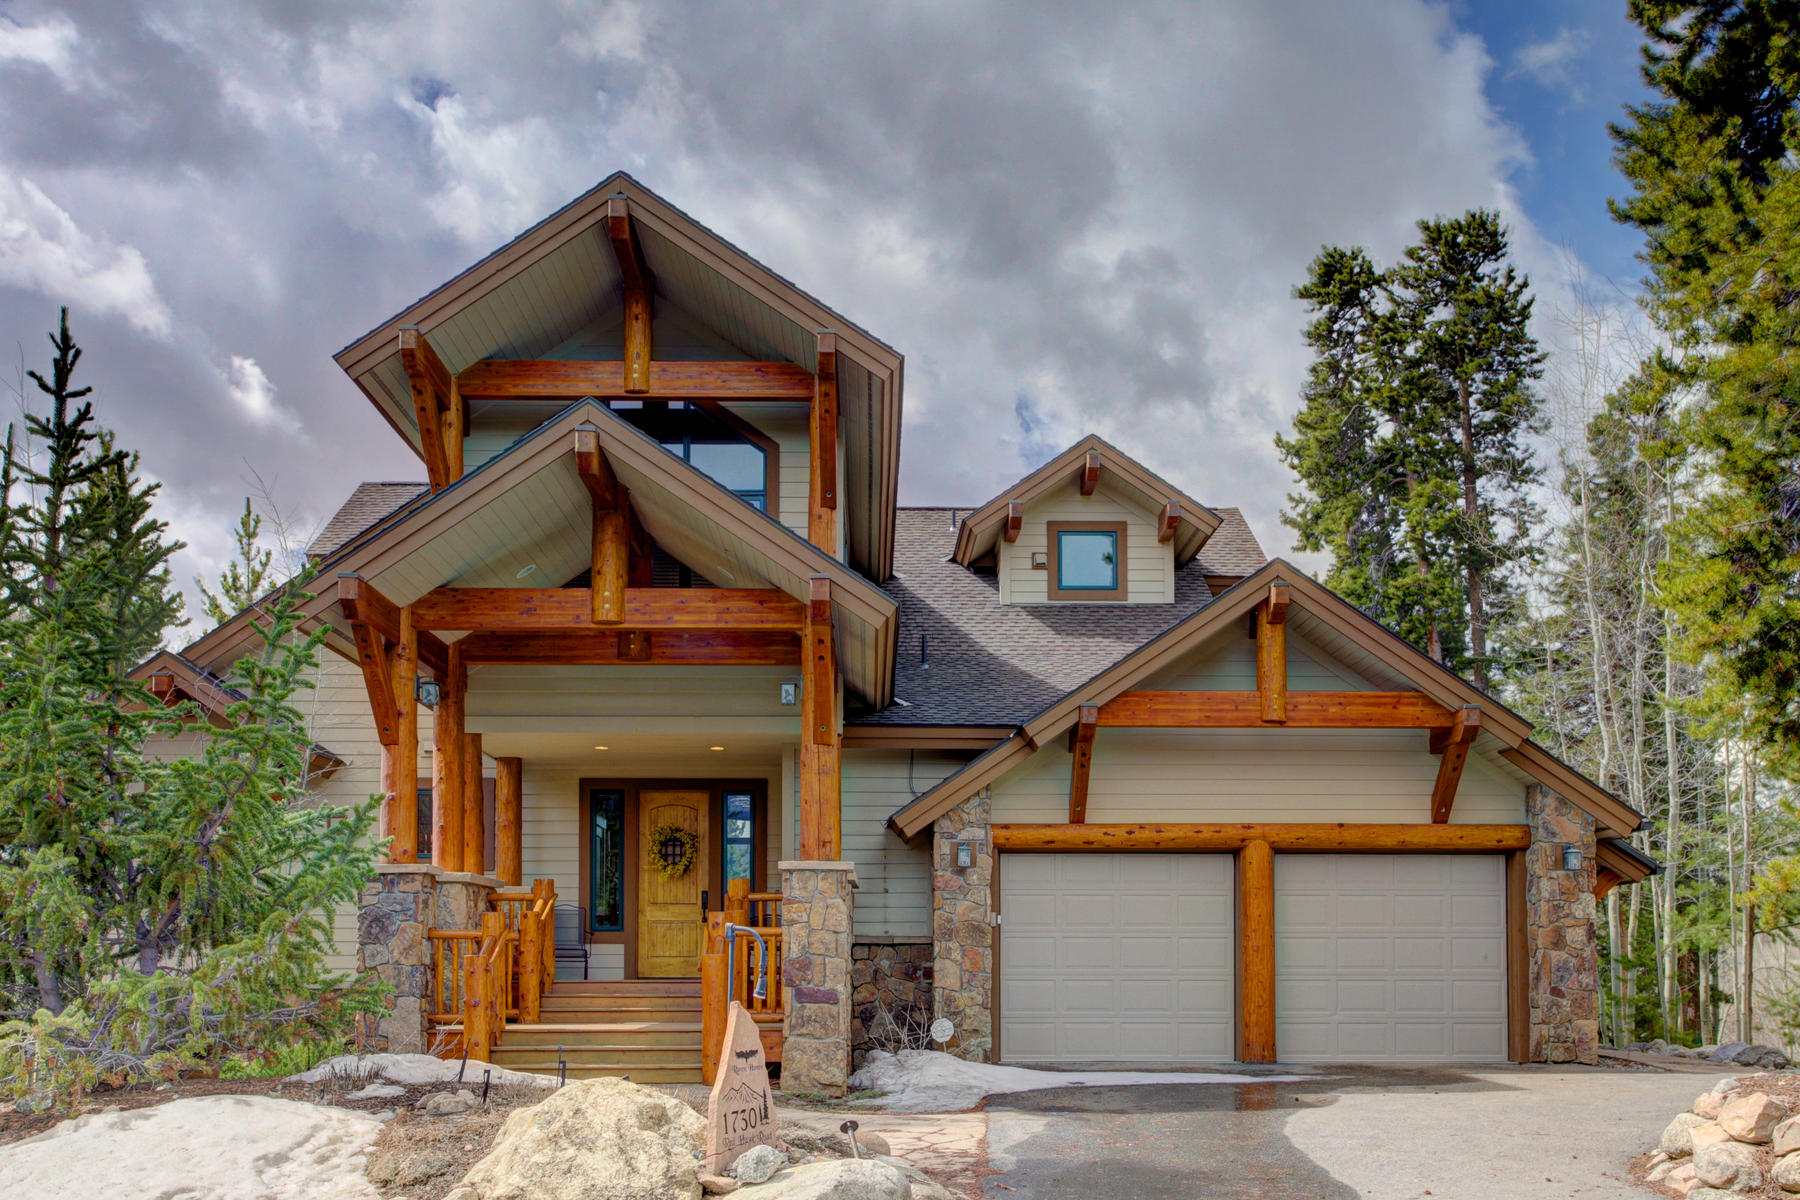 Single Family Home for Active at 1/4 Share Property in Eagles Nest 1730 Red Hawk Road Silverthorne, Colorado 80498 United States